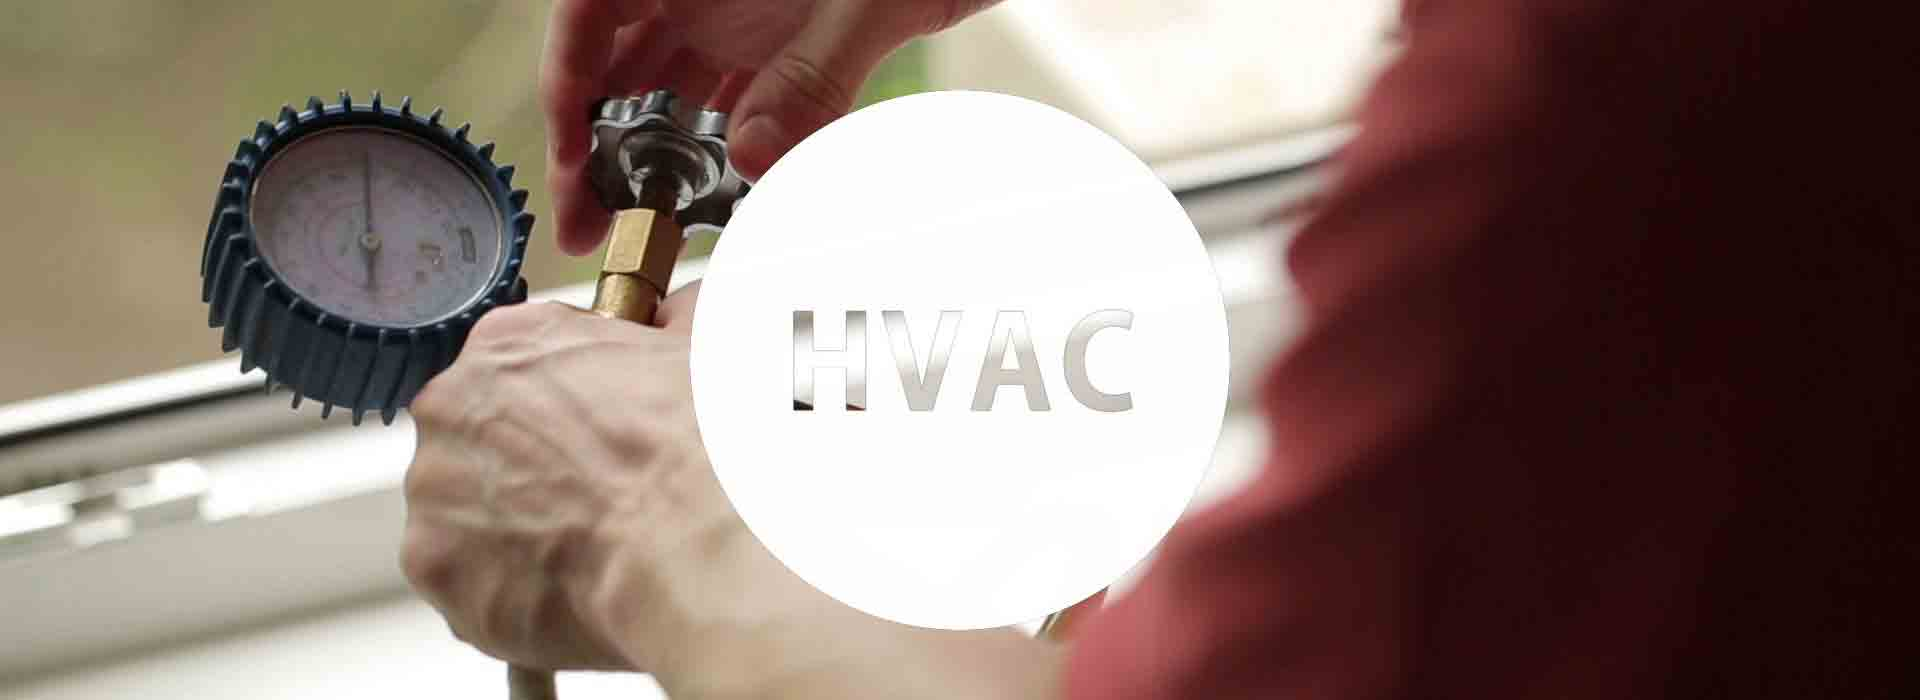 HVAC Repair Atlanta - Dependable Heating and Air